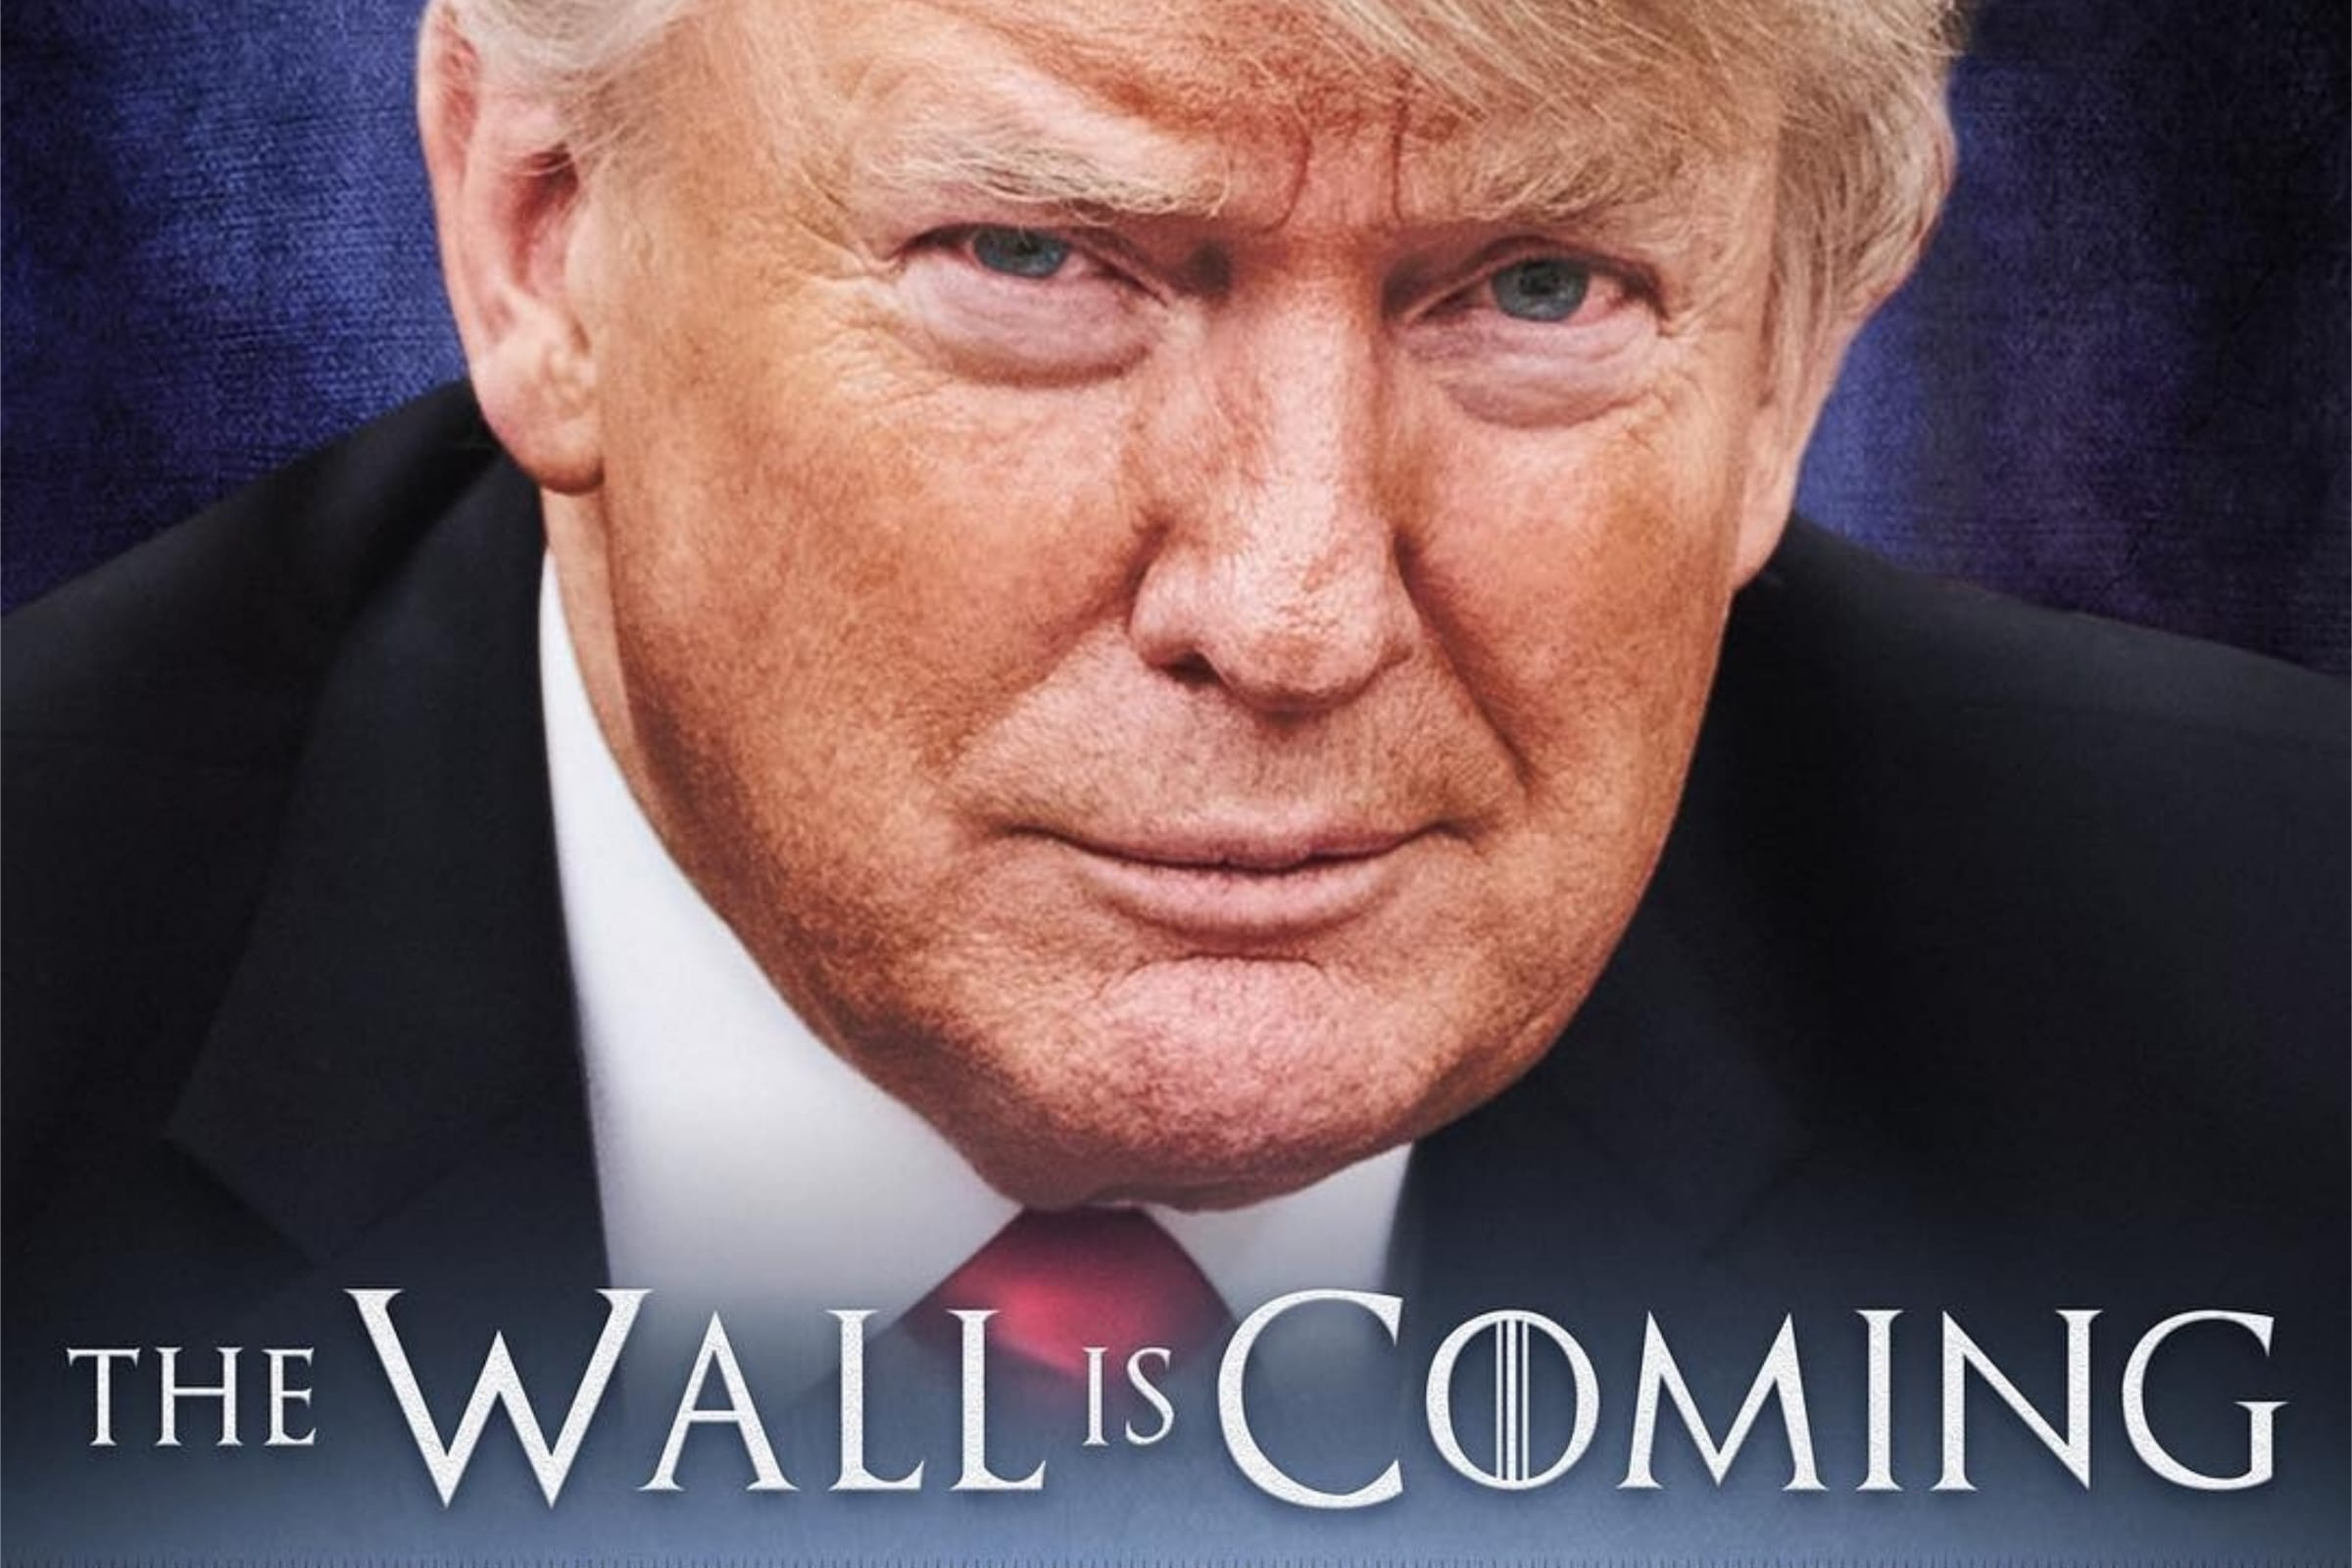 Home Donald Trump Meme Wall Is Coming Arme Politique Magazine Antidote